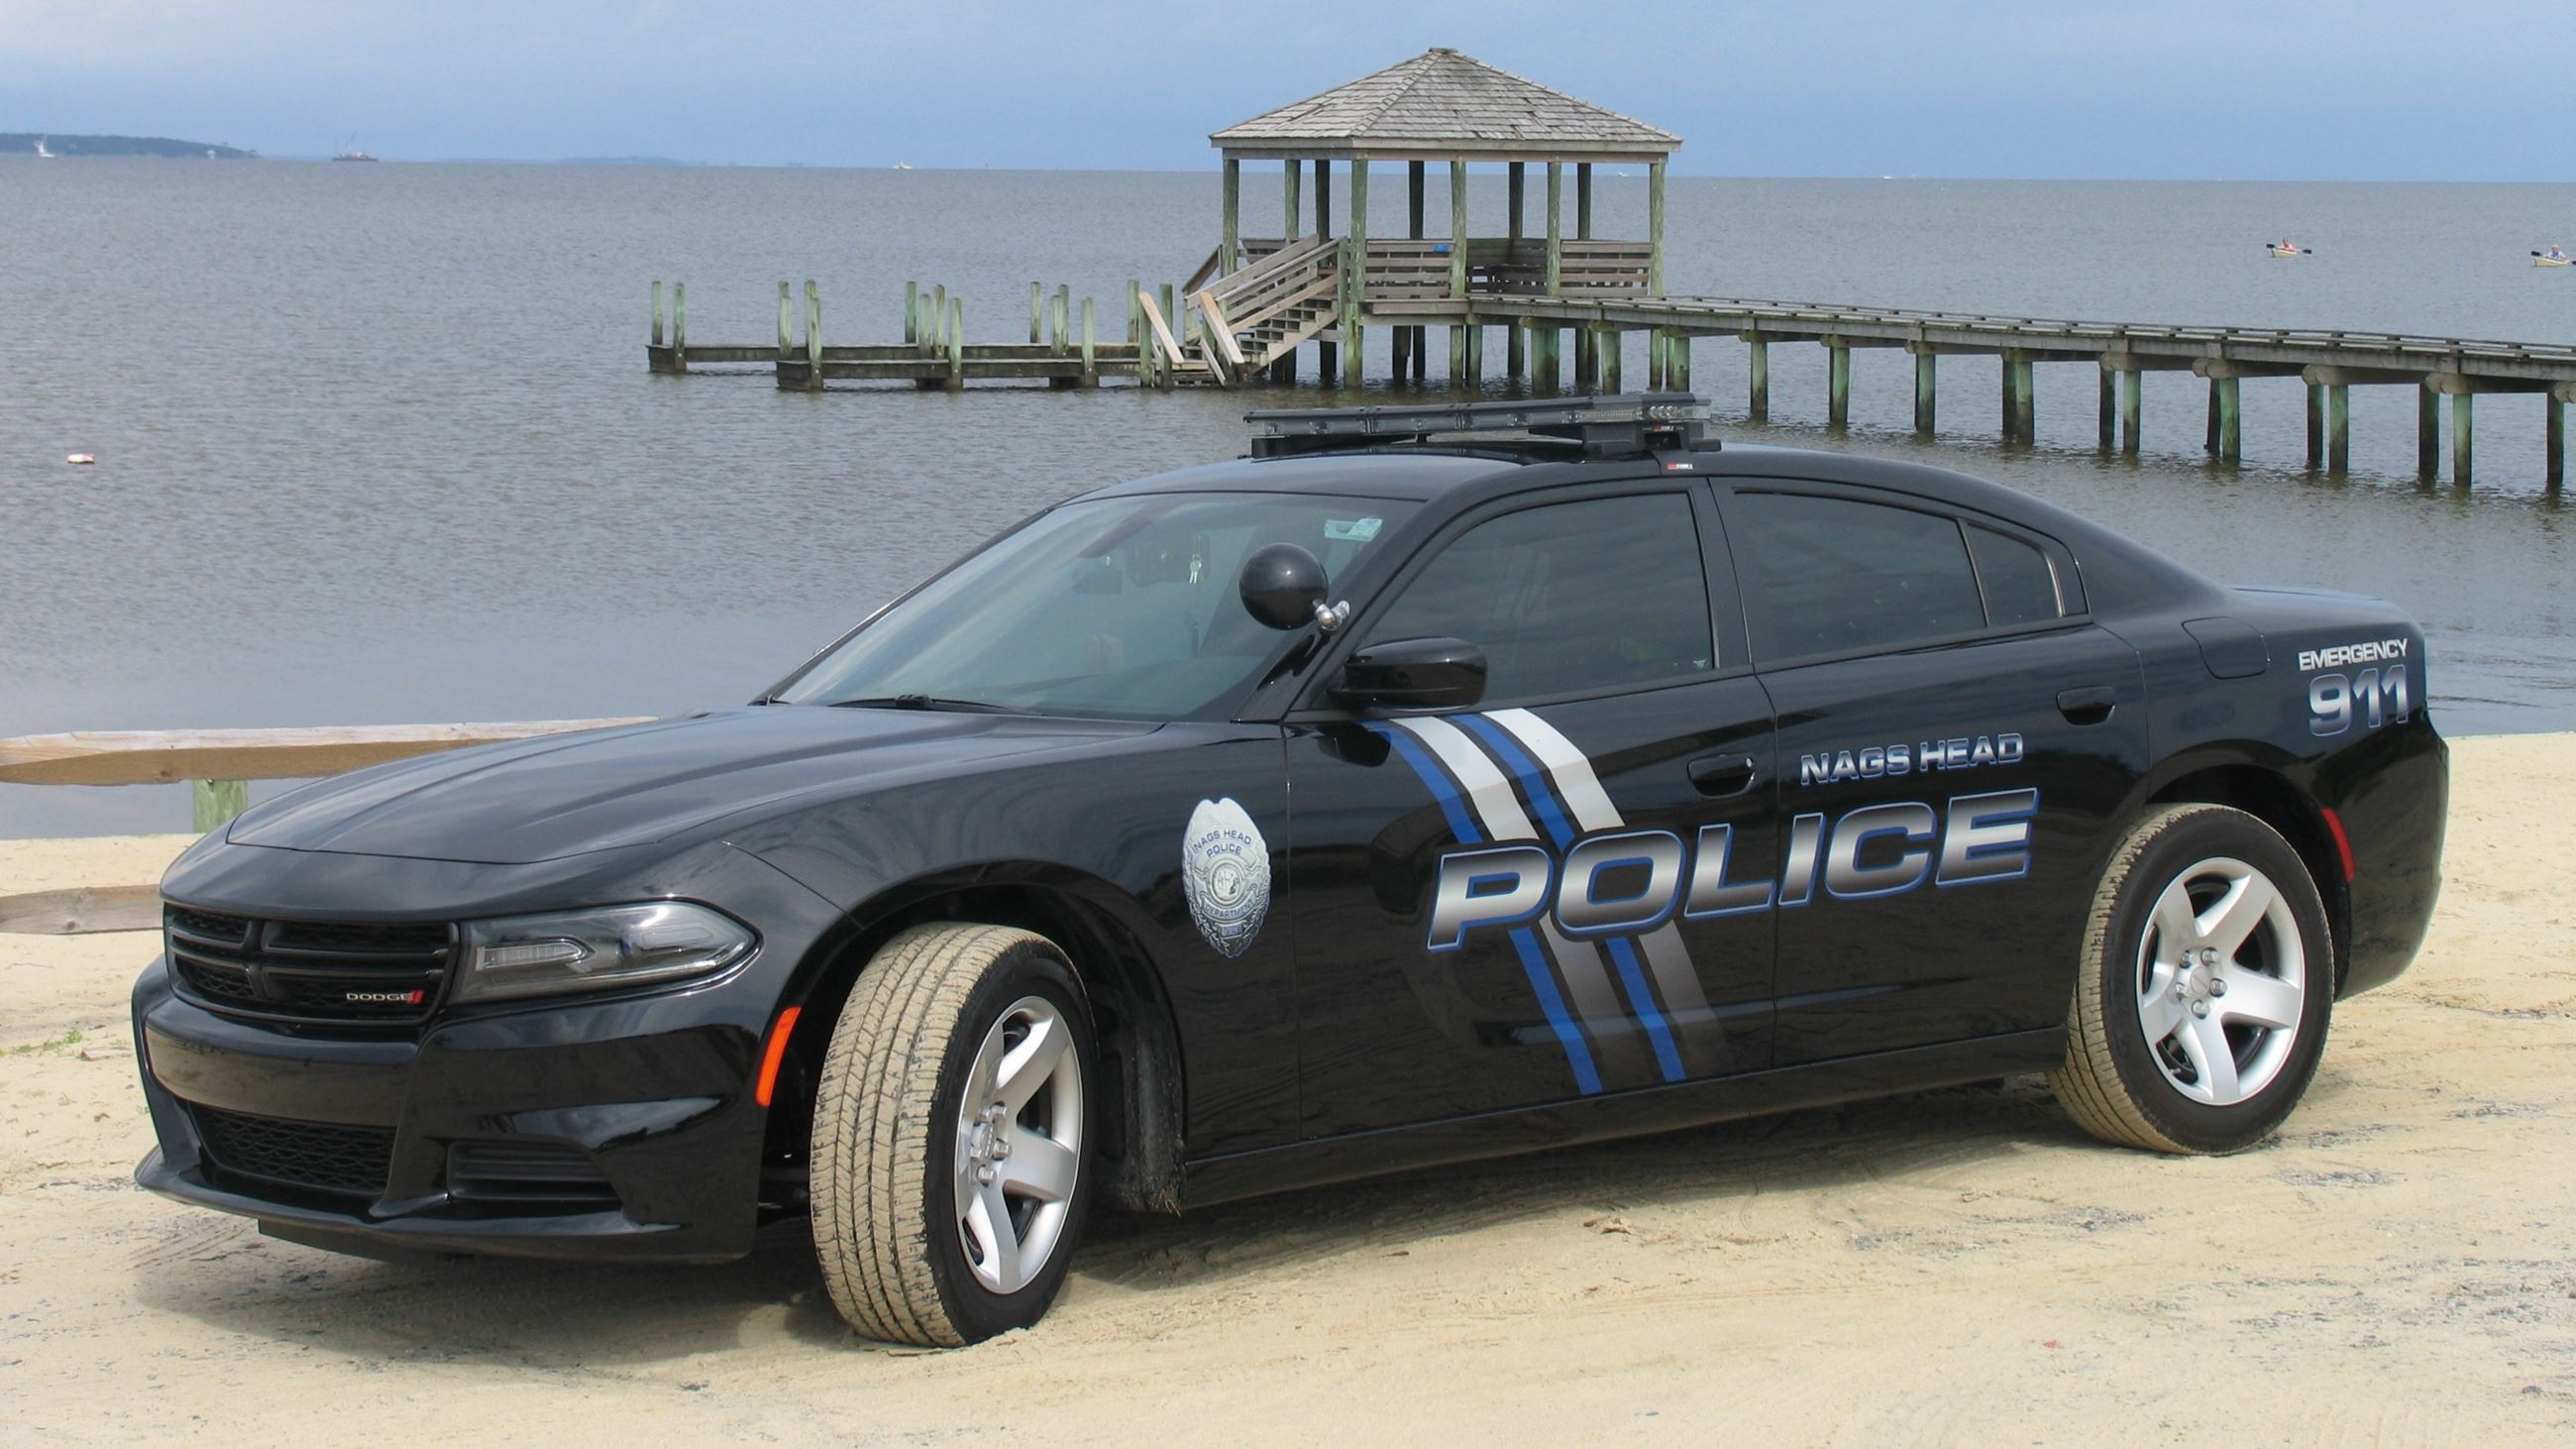 Close up of police car on the beach